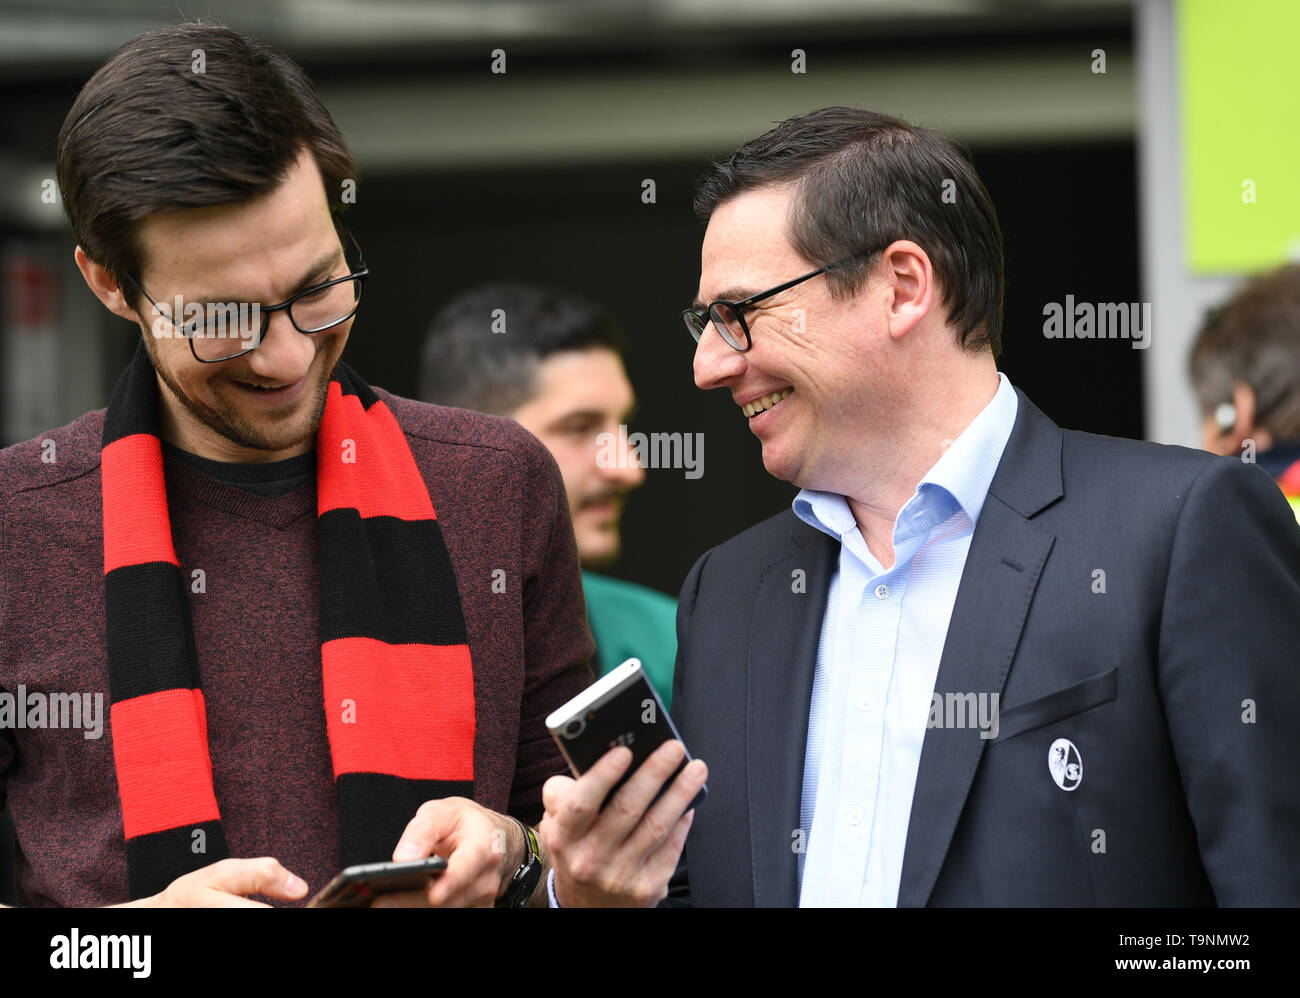 Freiburg, Germany. 18th May, 2019. Soccer: Bundesliga, SC Freiburg - 1st FC Nuremberg, 34th matchday in the Schwarzwaldstadion. Martin Horn (l), Lord Mayor of Freiburg, talks to Oliver Leki (r), Managing Director of SC Freiburg, before the match. Credit: Patrick Seeger/dpa - Use only after contractual agreement/dpa/Alamy Live News - Stock Image